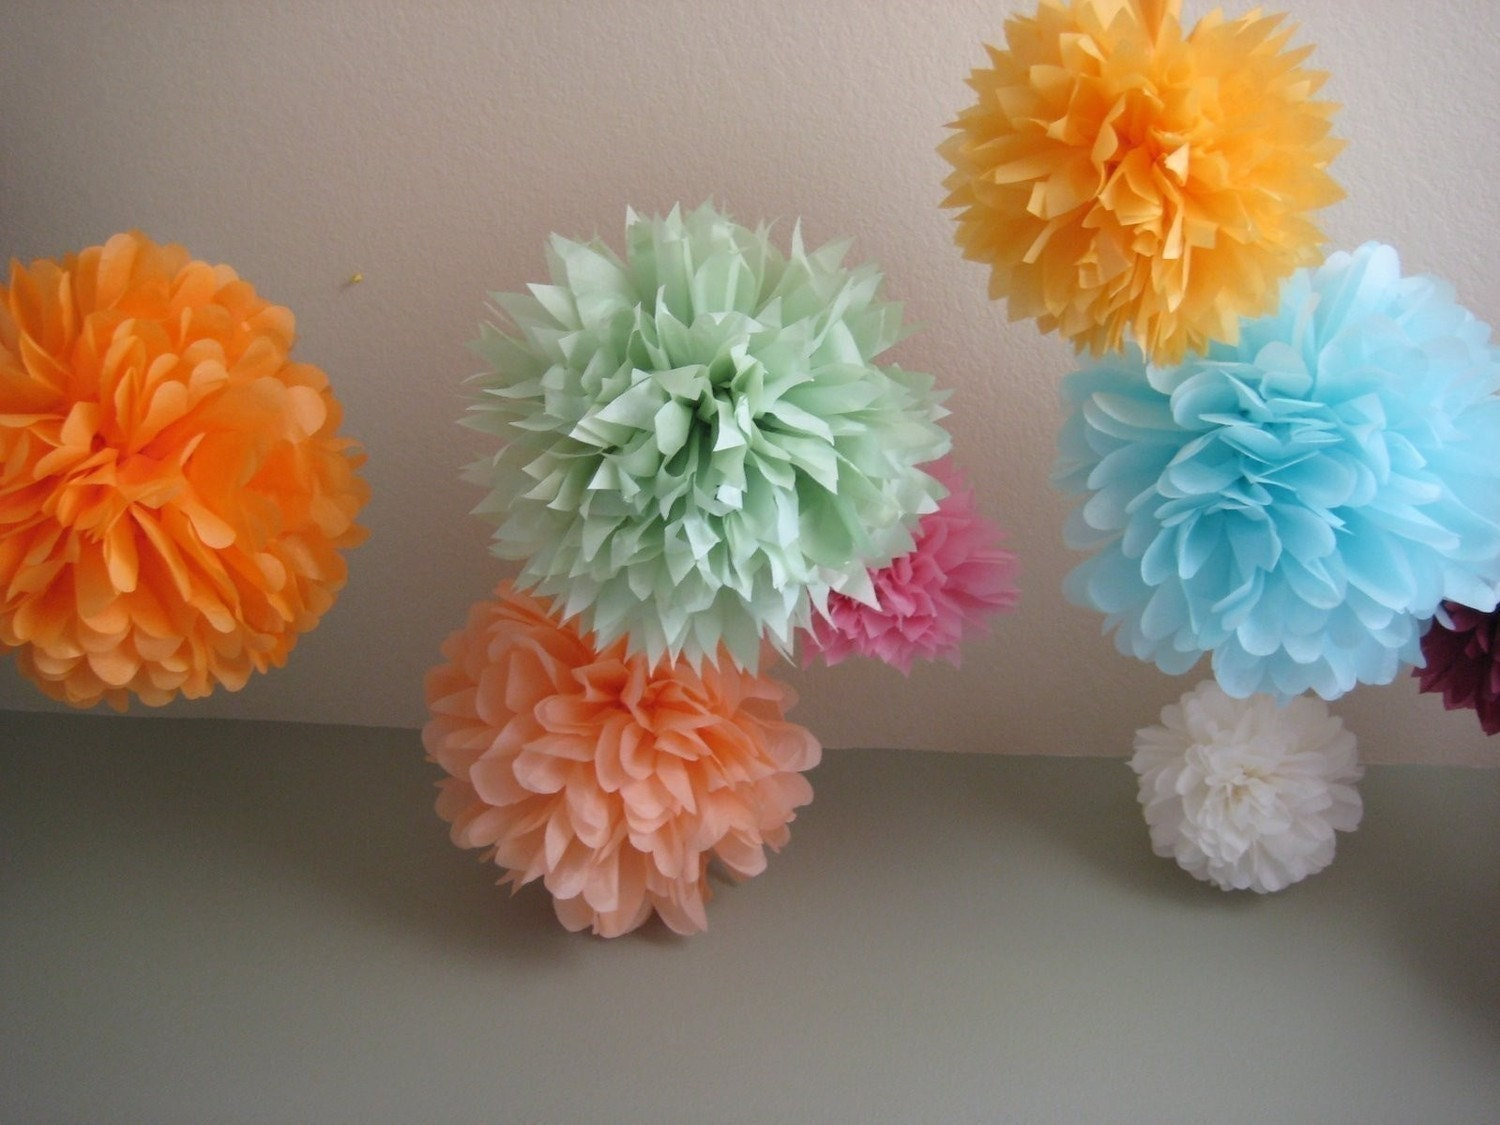 SALE - 5 Tissue Pom Kit - Pick your colors - As Seen in Gossip Girl - prosttothehost